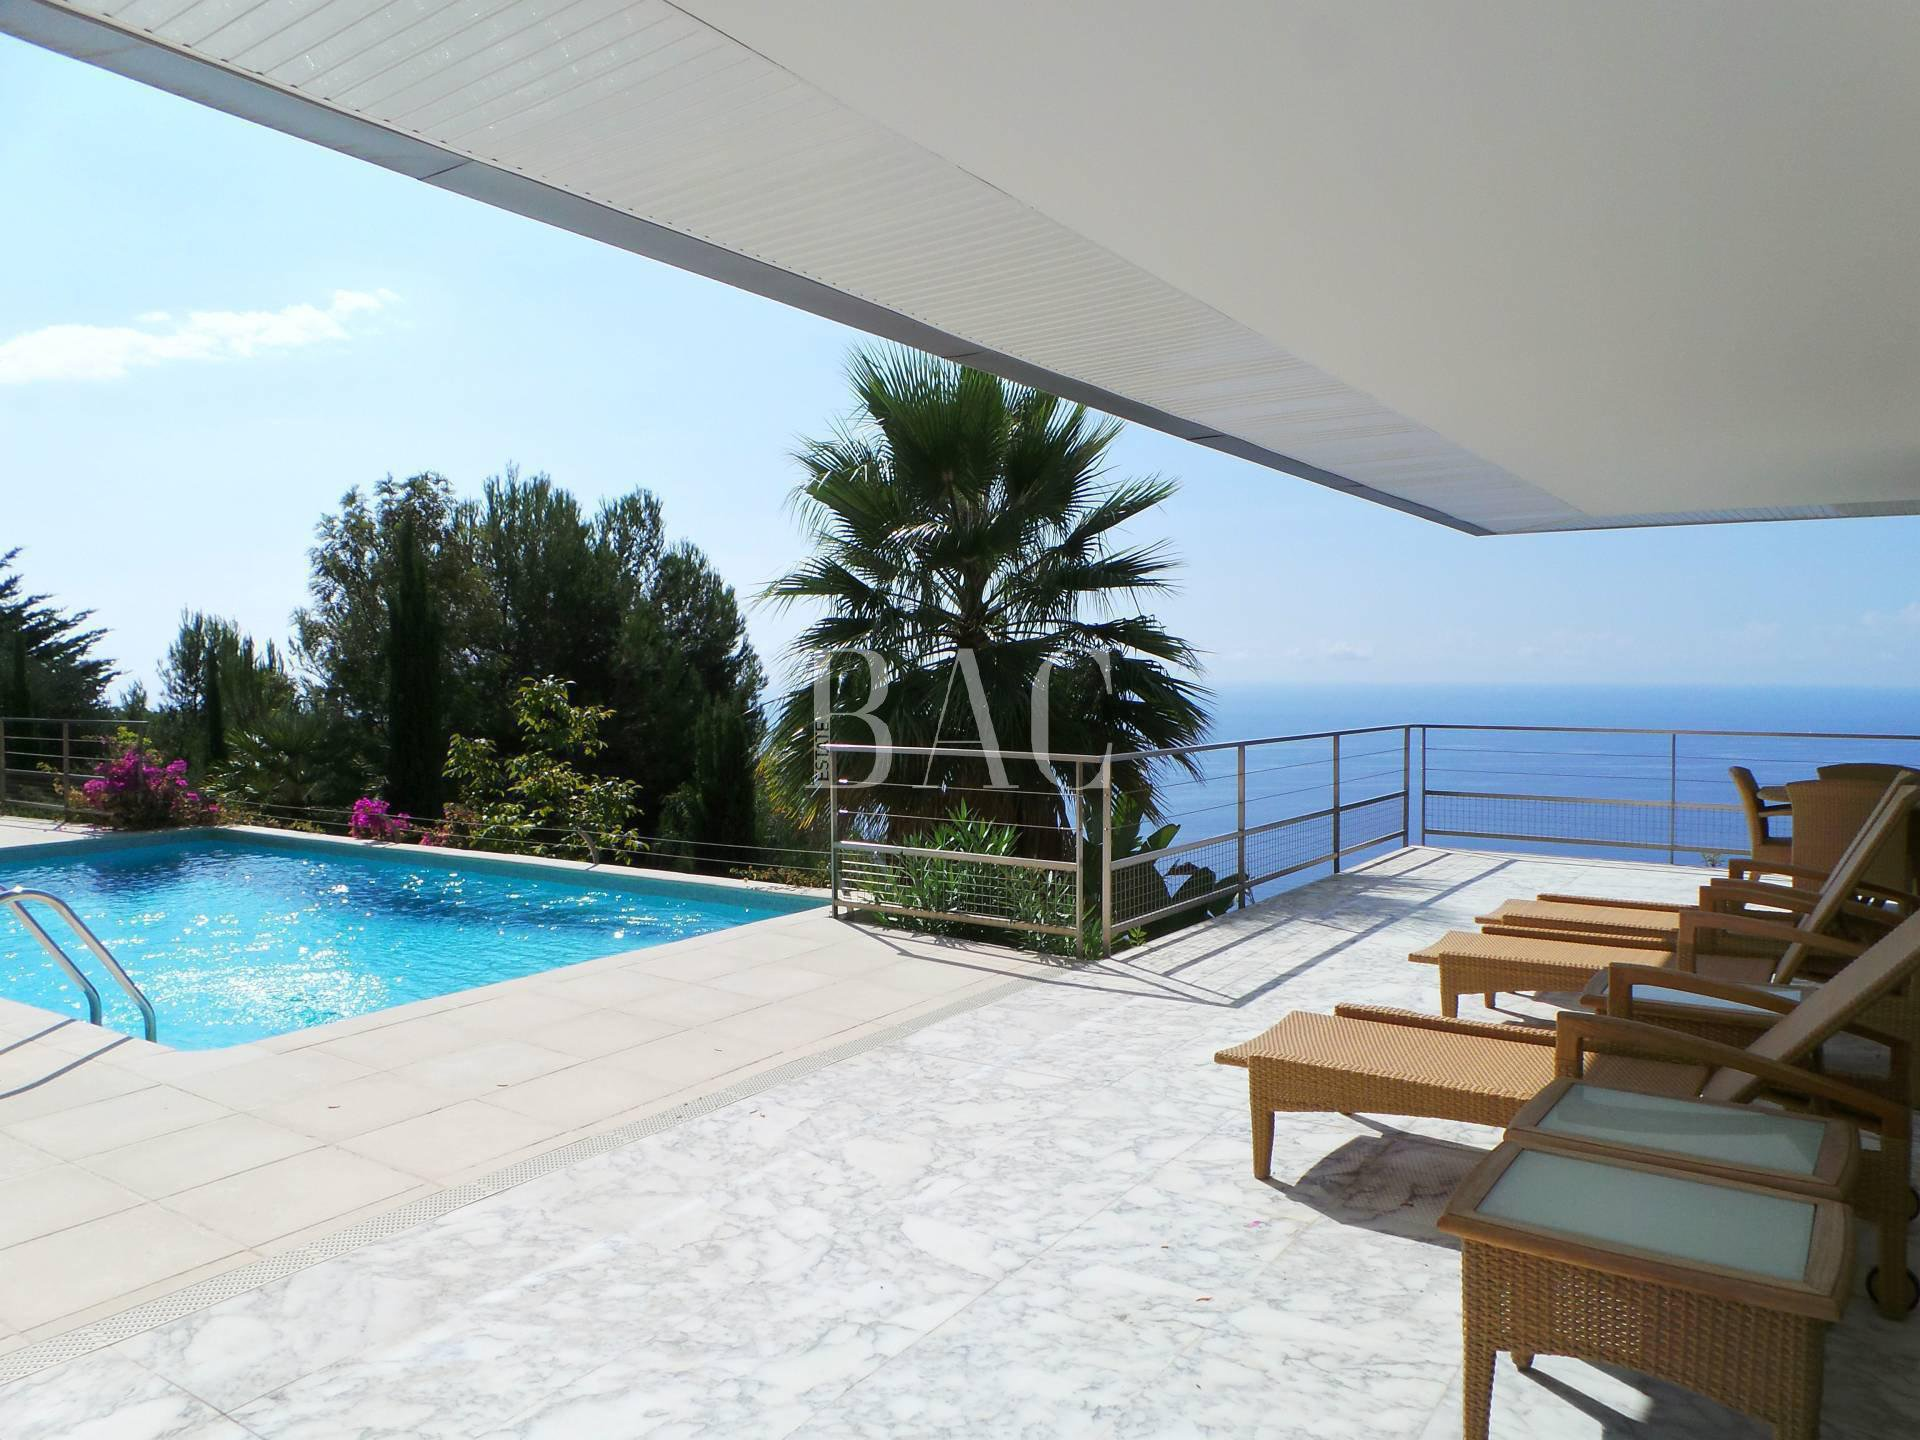 Contemporary villa in Eze St Lawrence district